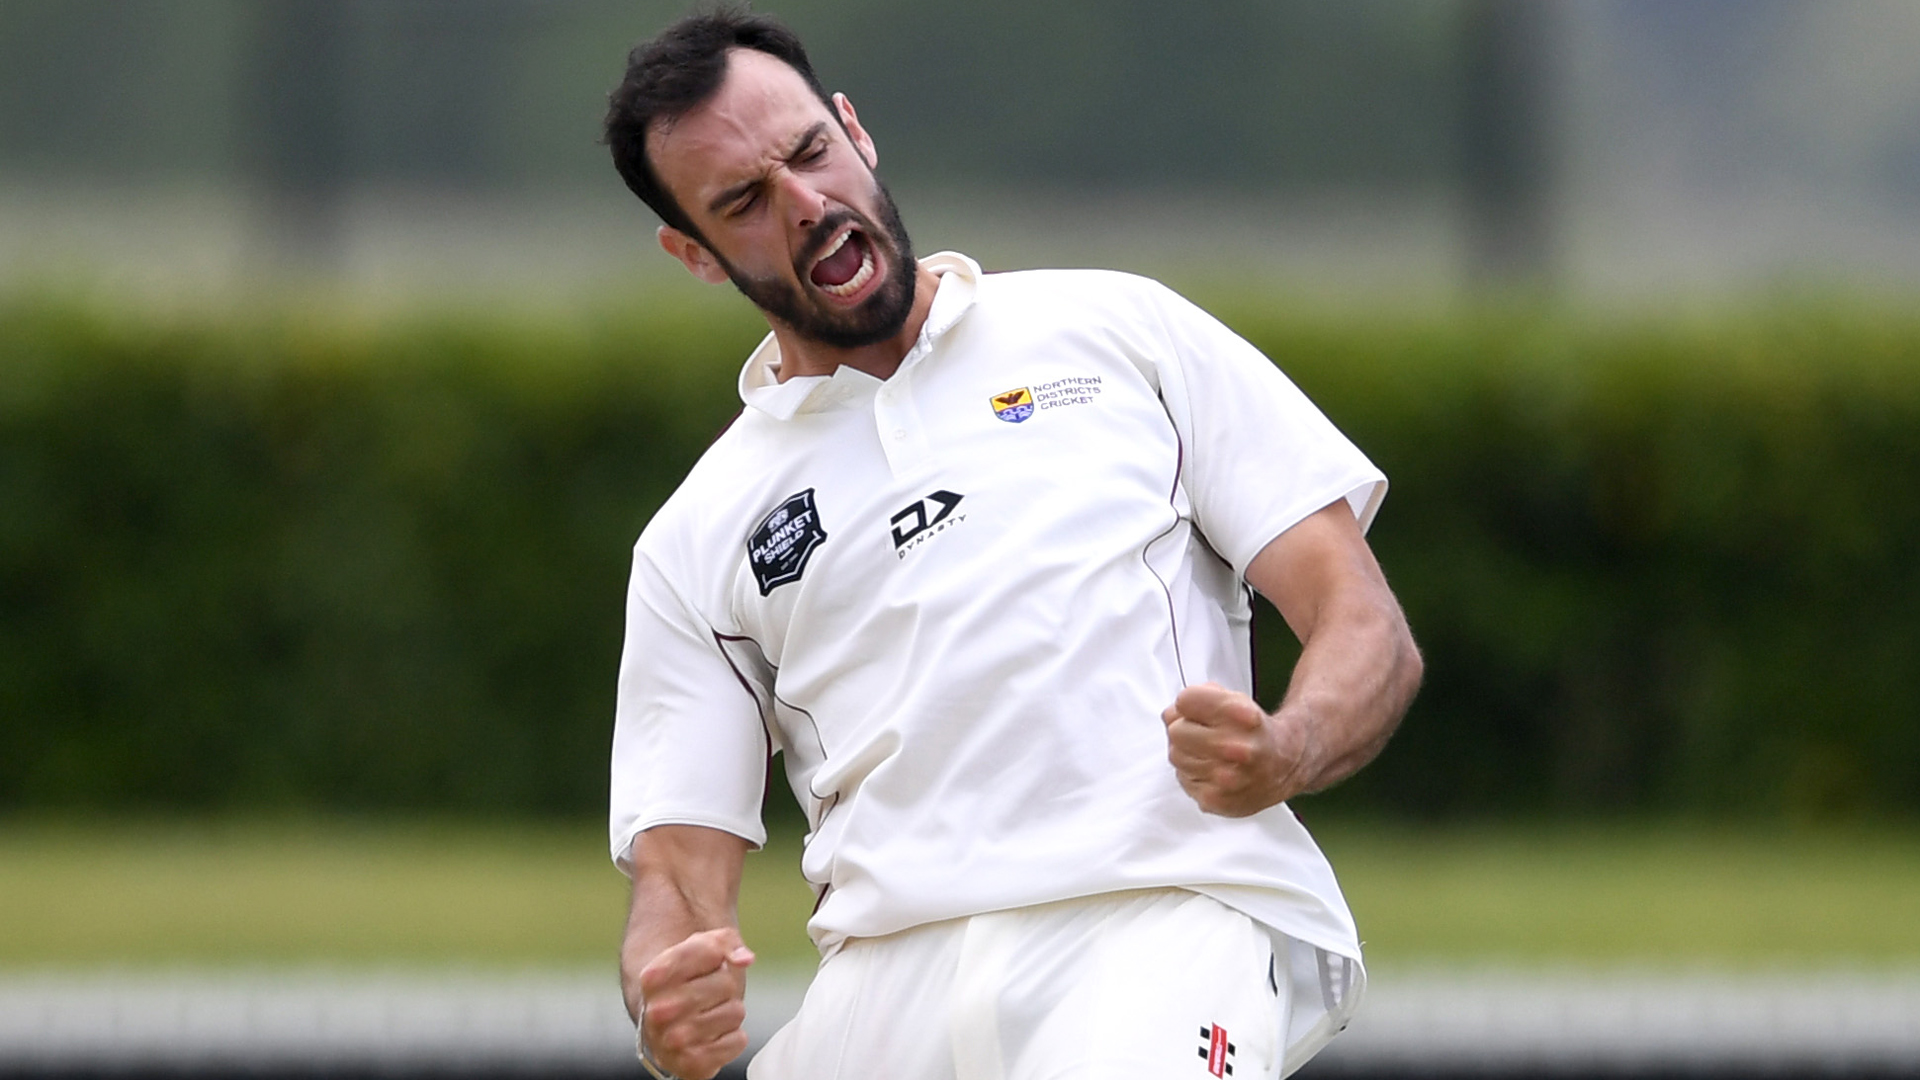 Mitchell to make Test debut for New Zealand against England